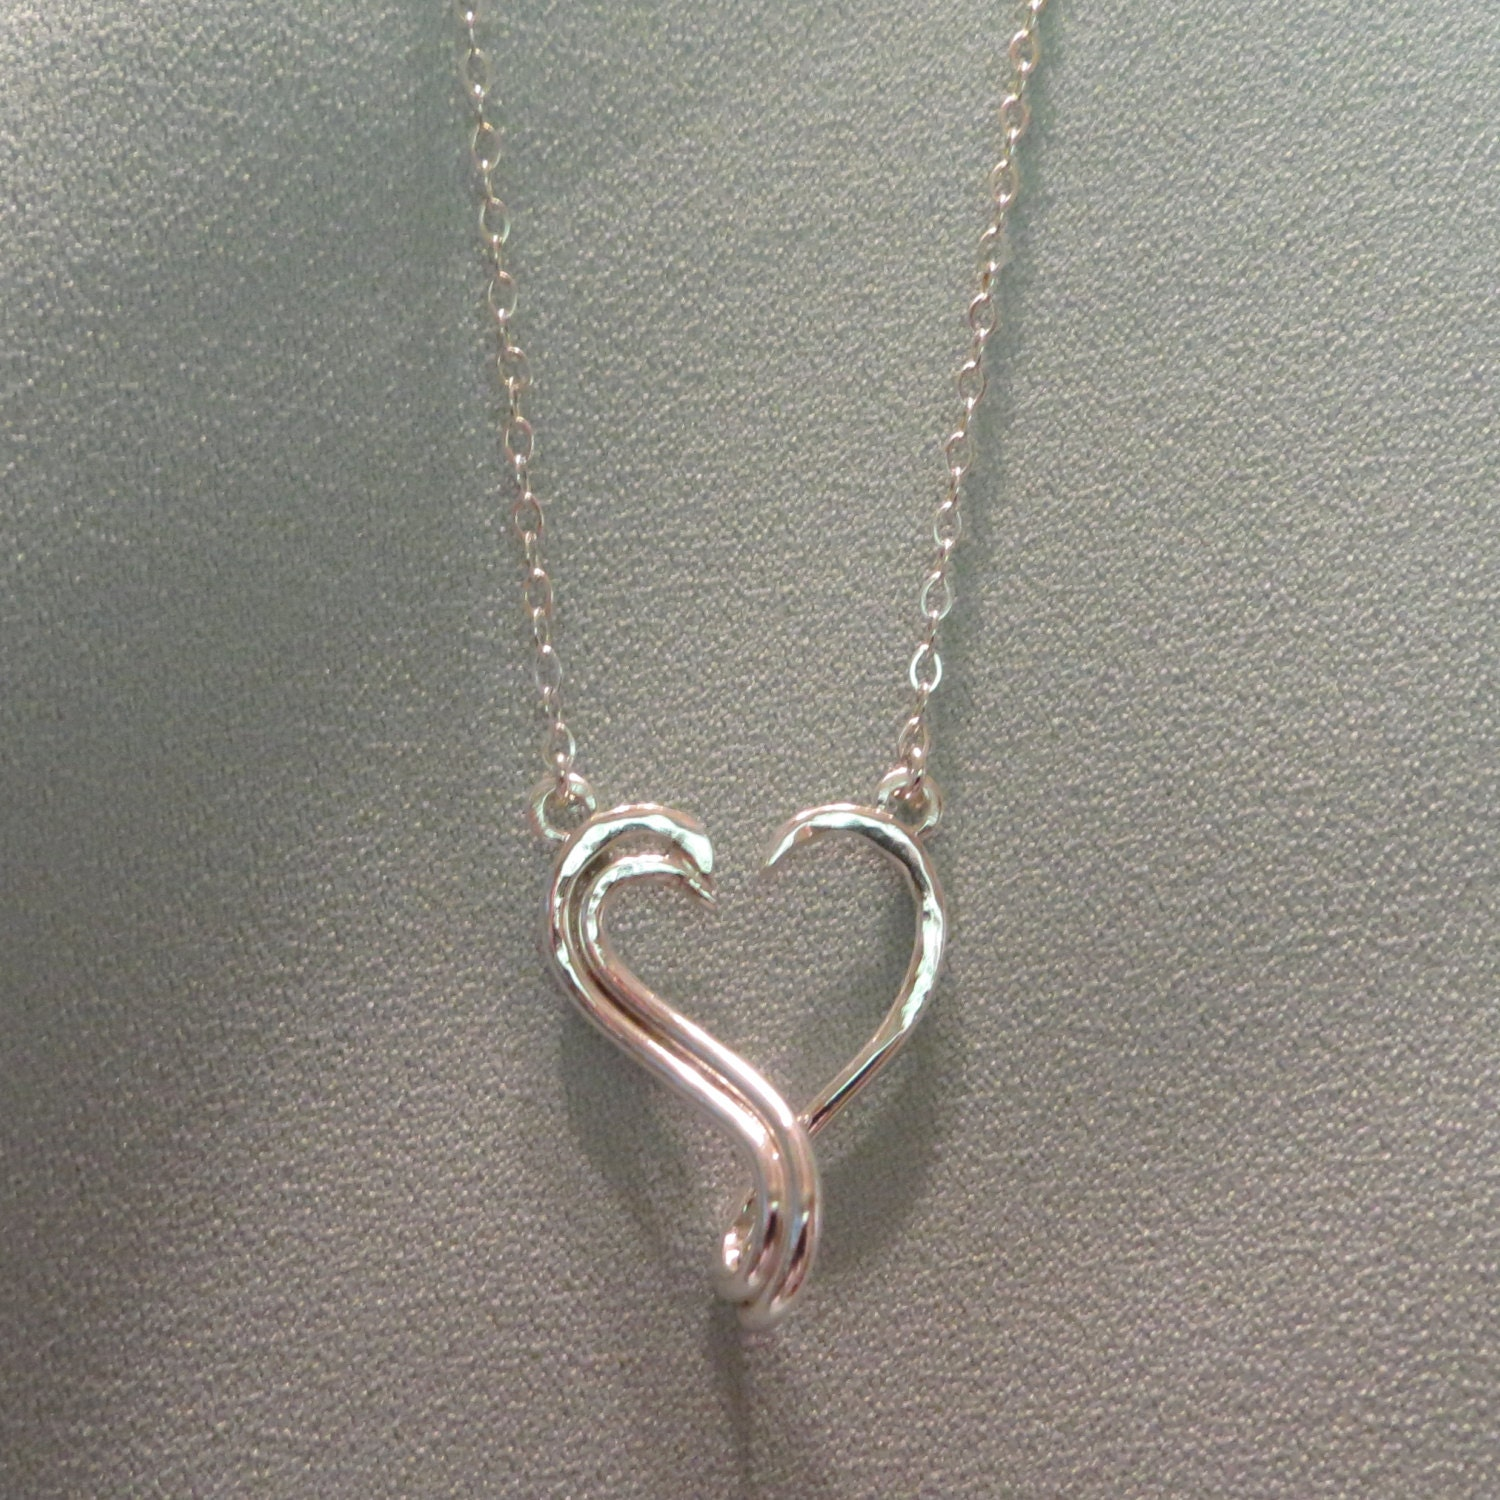 Keepsake Open Heart Ring Holder Necklace Silver Charm Pendant